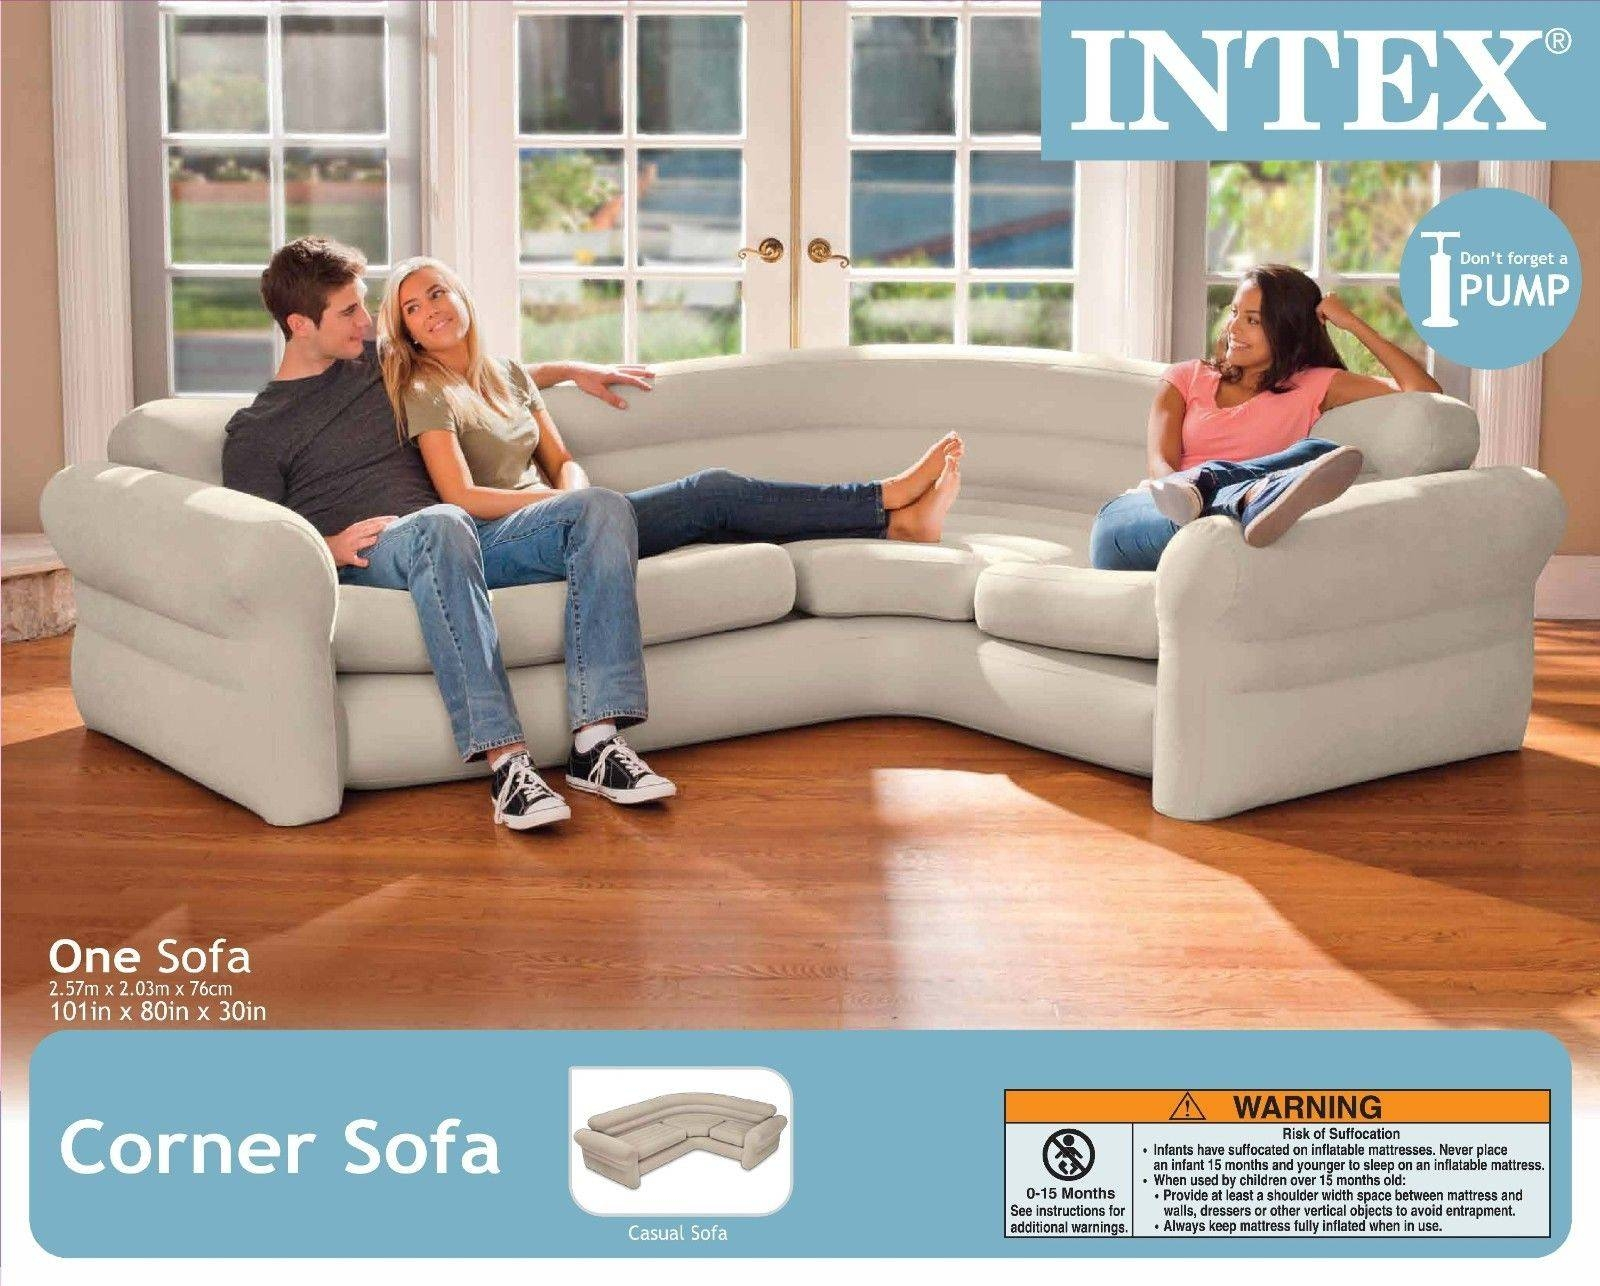 Intex Inflatable Corner Sofa Portable Modern Contemporary Air Throughout Intex Inflatable Sofas (View 6 of 15)